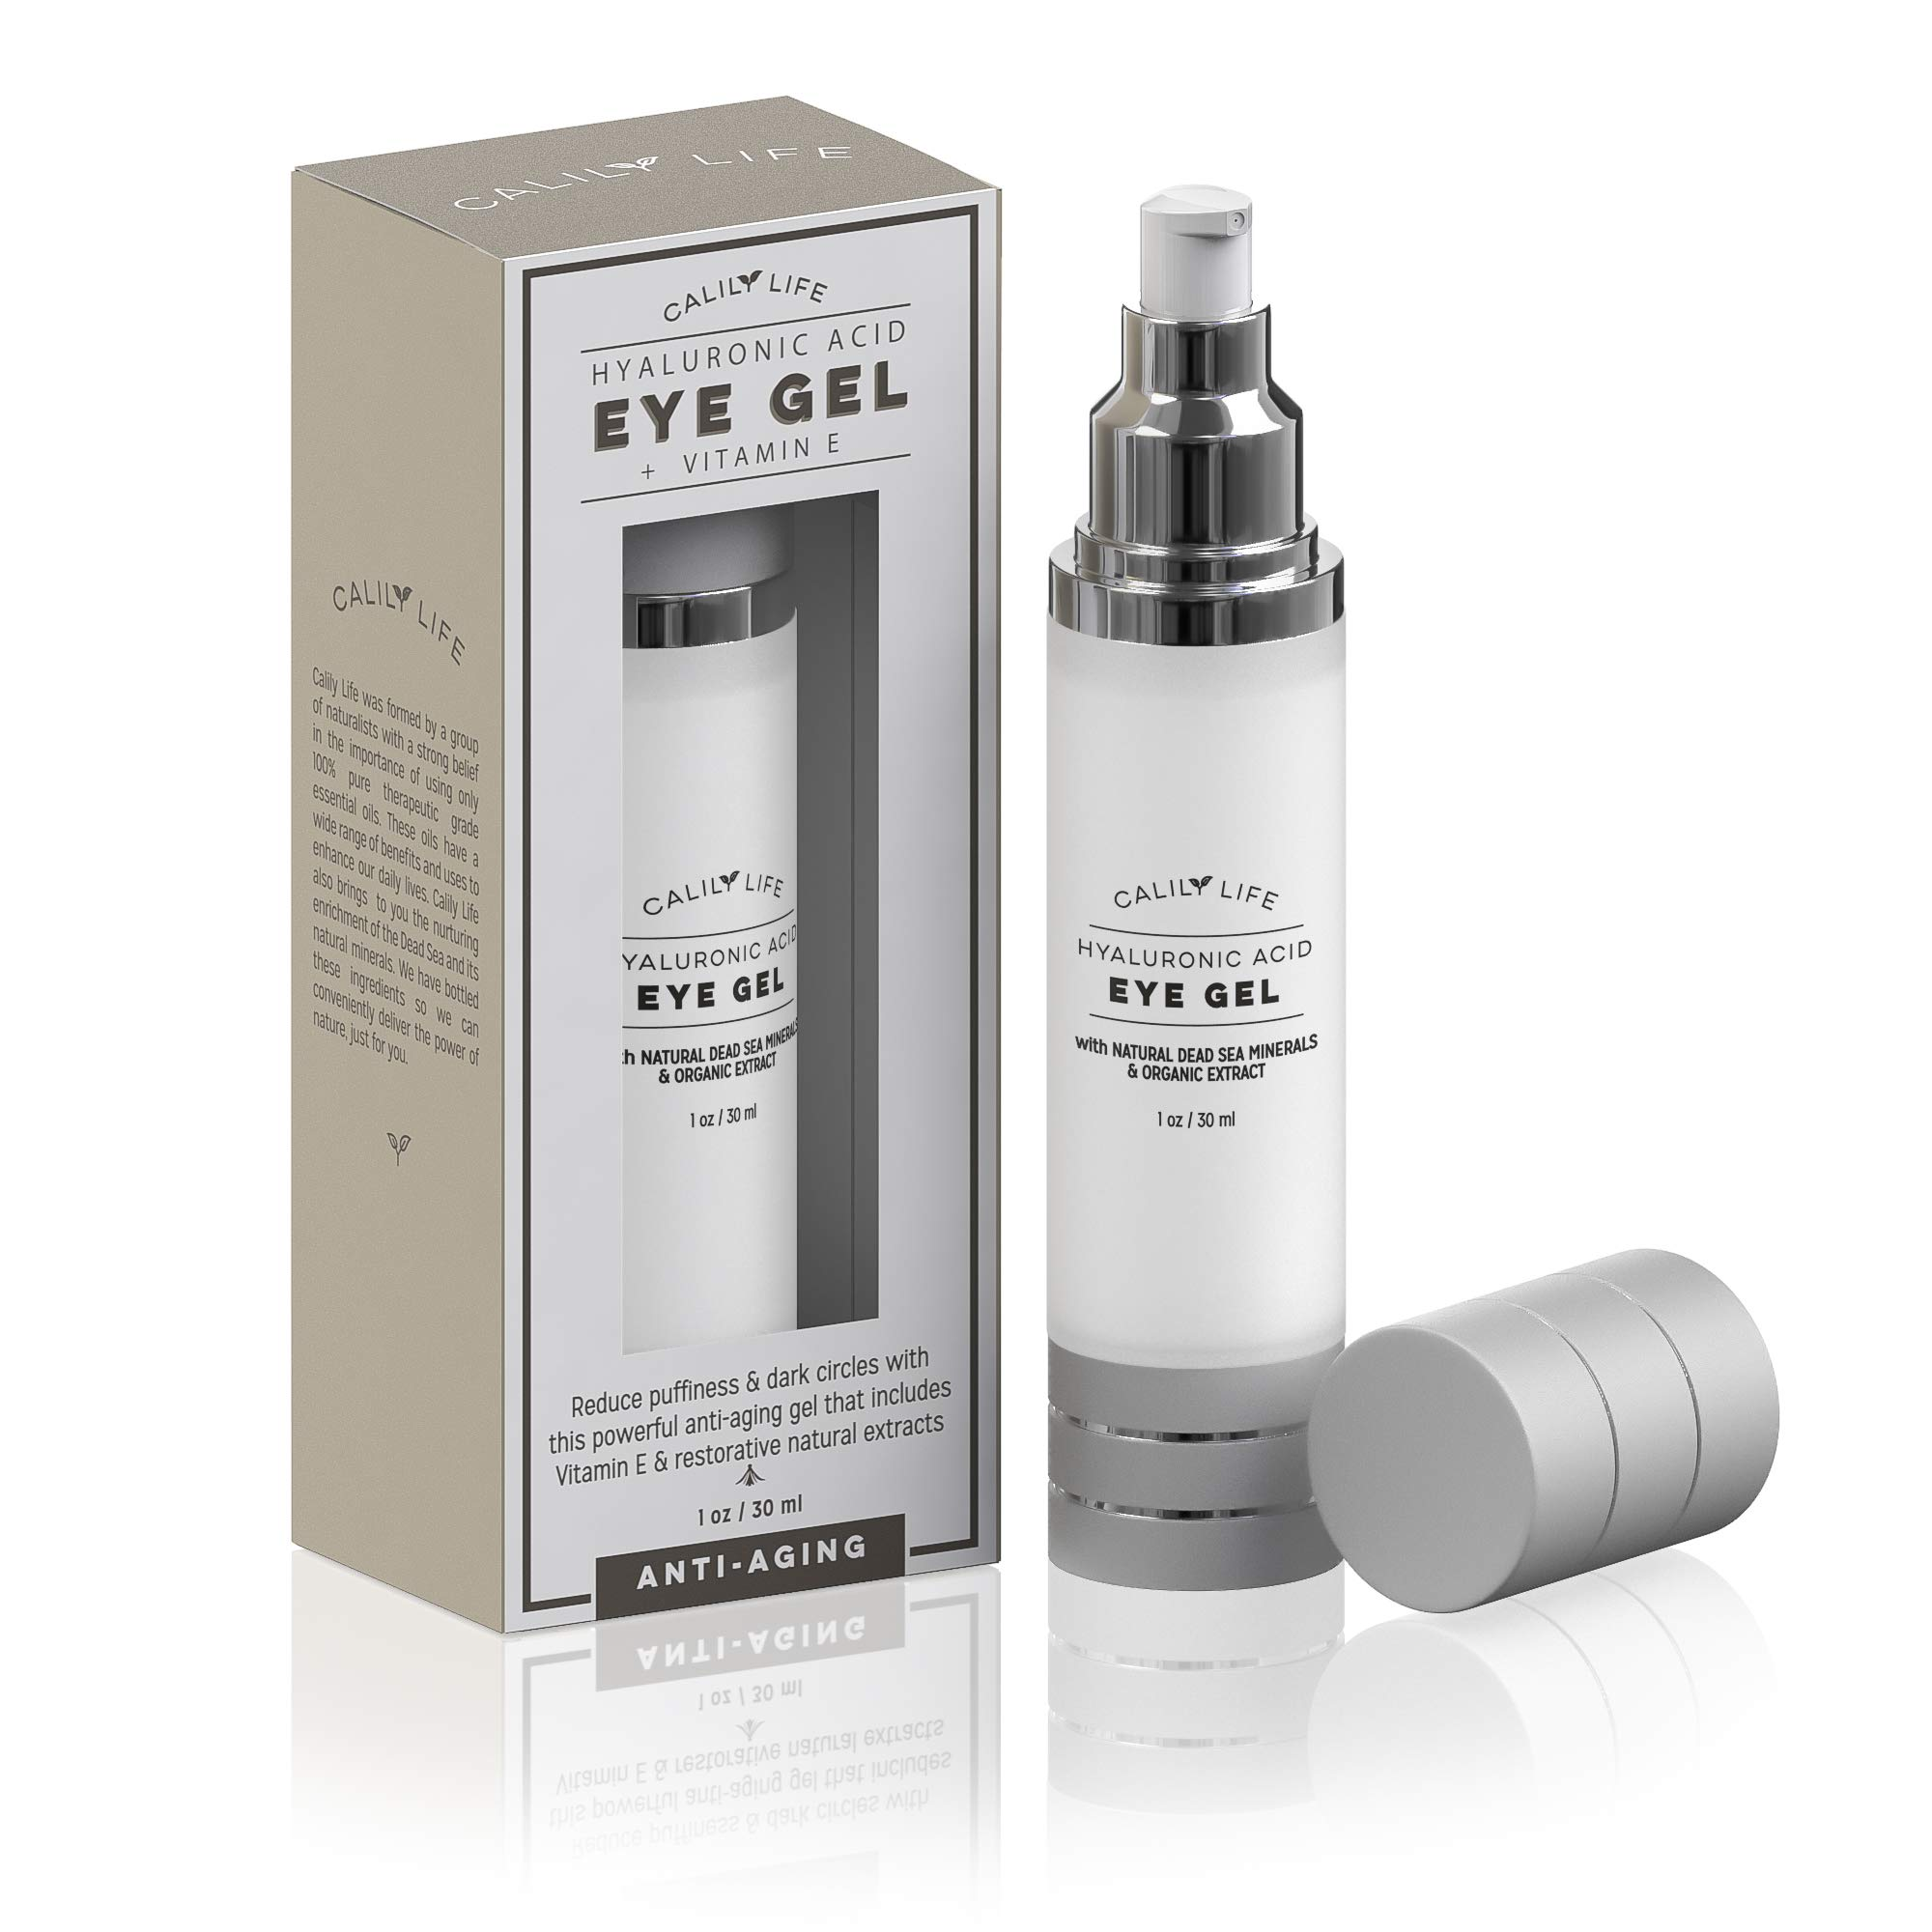 Calily Life Premium Eye Gel for Treatment of Puffiness, Bags, Dark Circles, Fine Lines and Wrinkles Anti-Aging Formula - 1 oz.